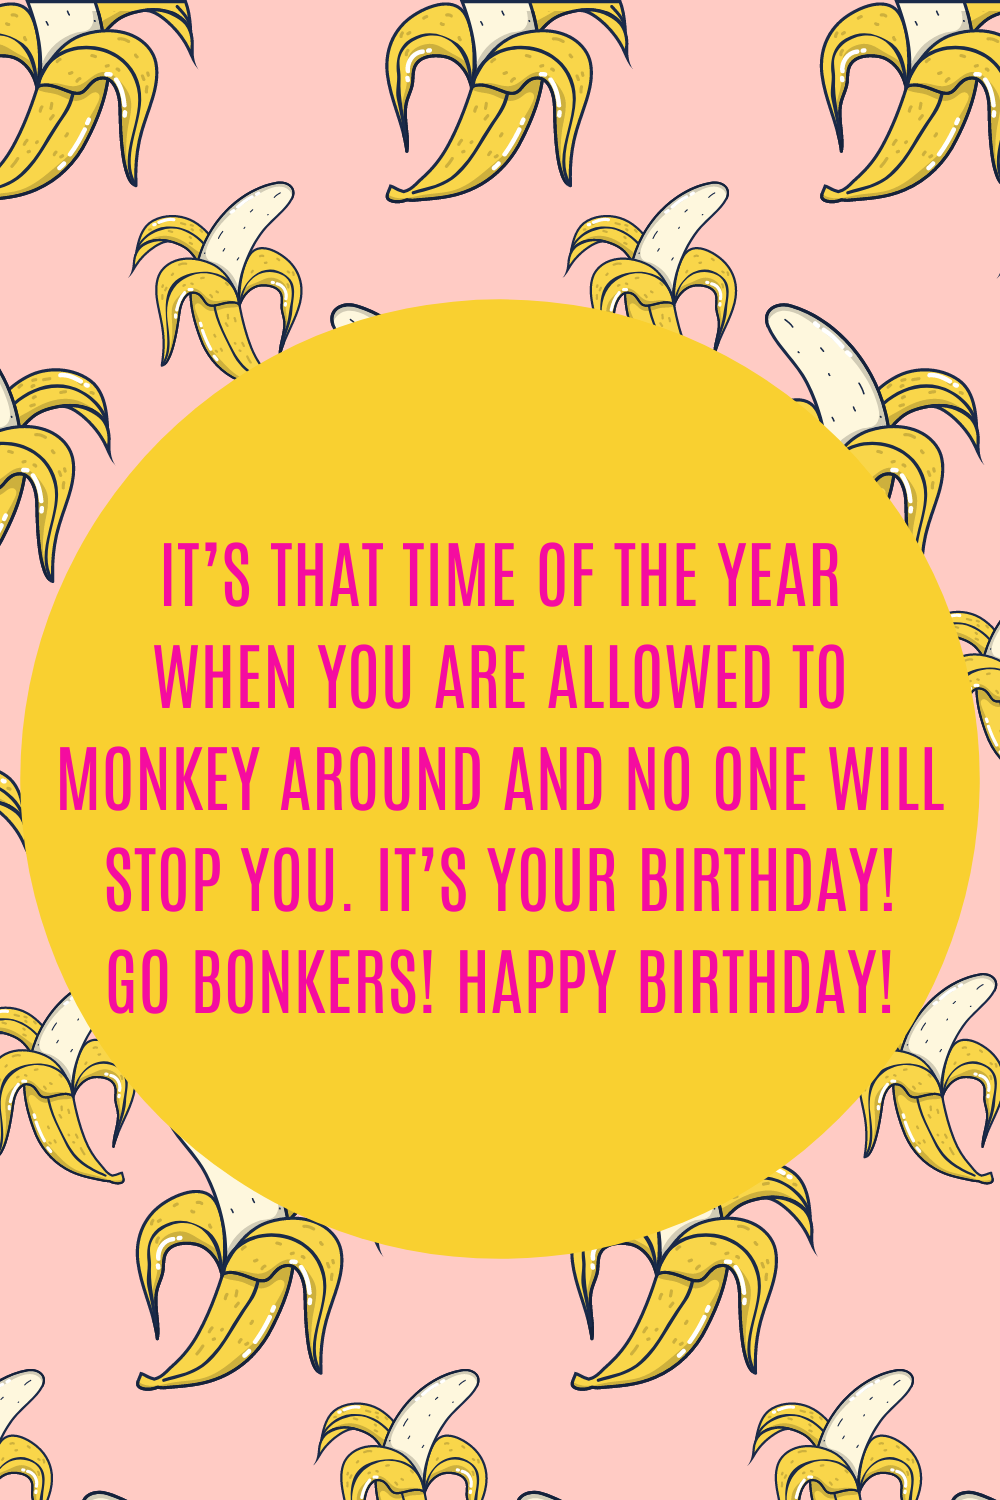 Funny quotes to tell your kid happy birthday!